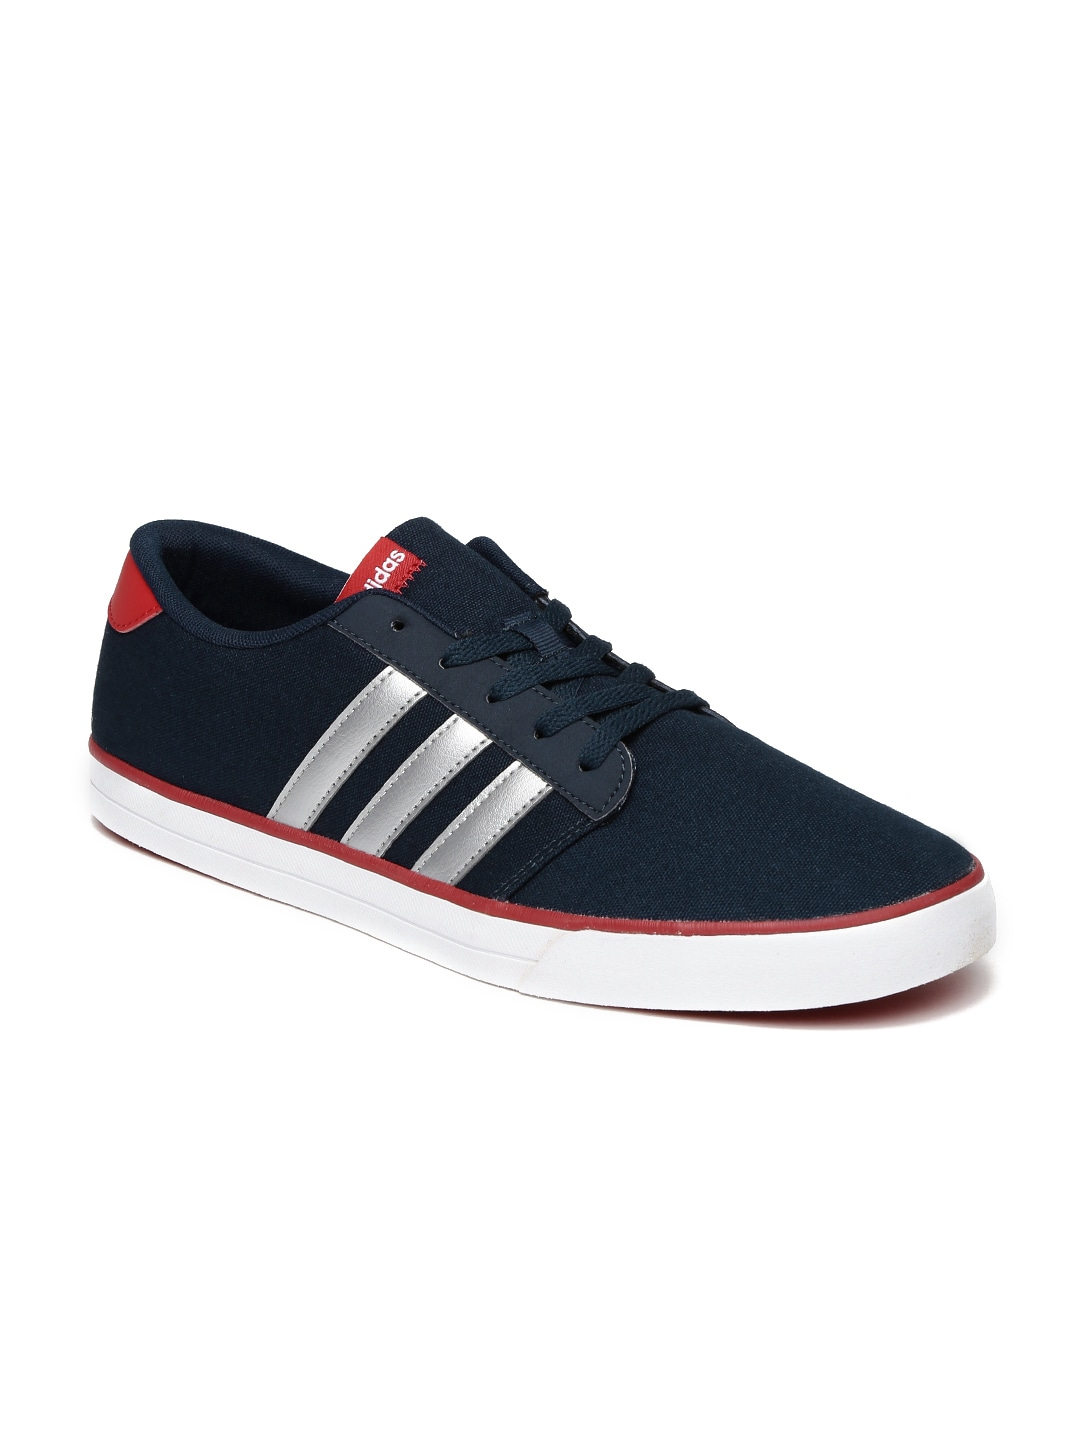 neo sneakers adidas